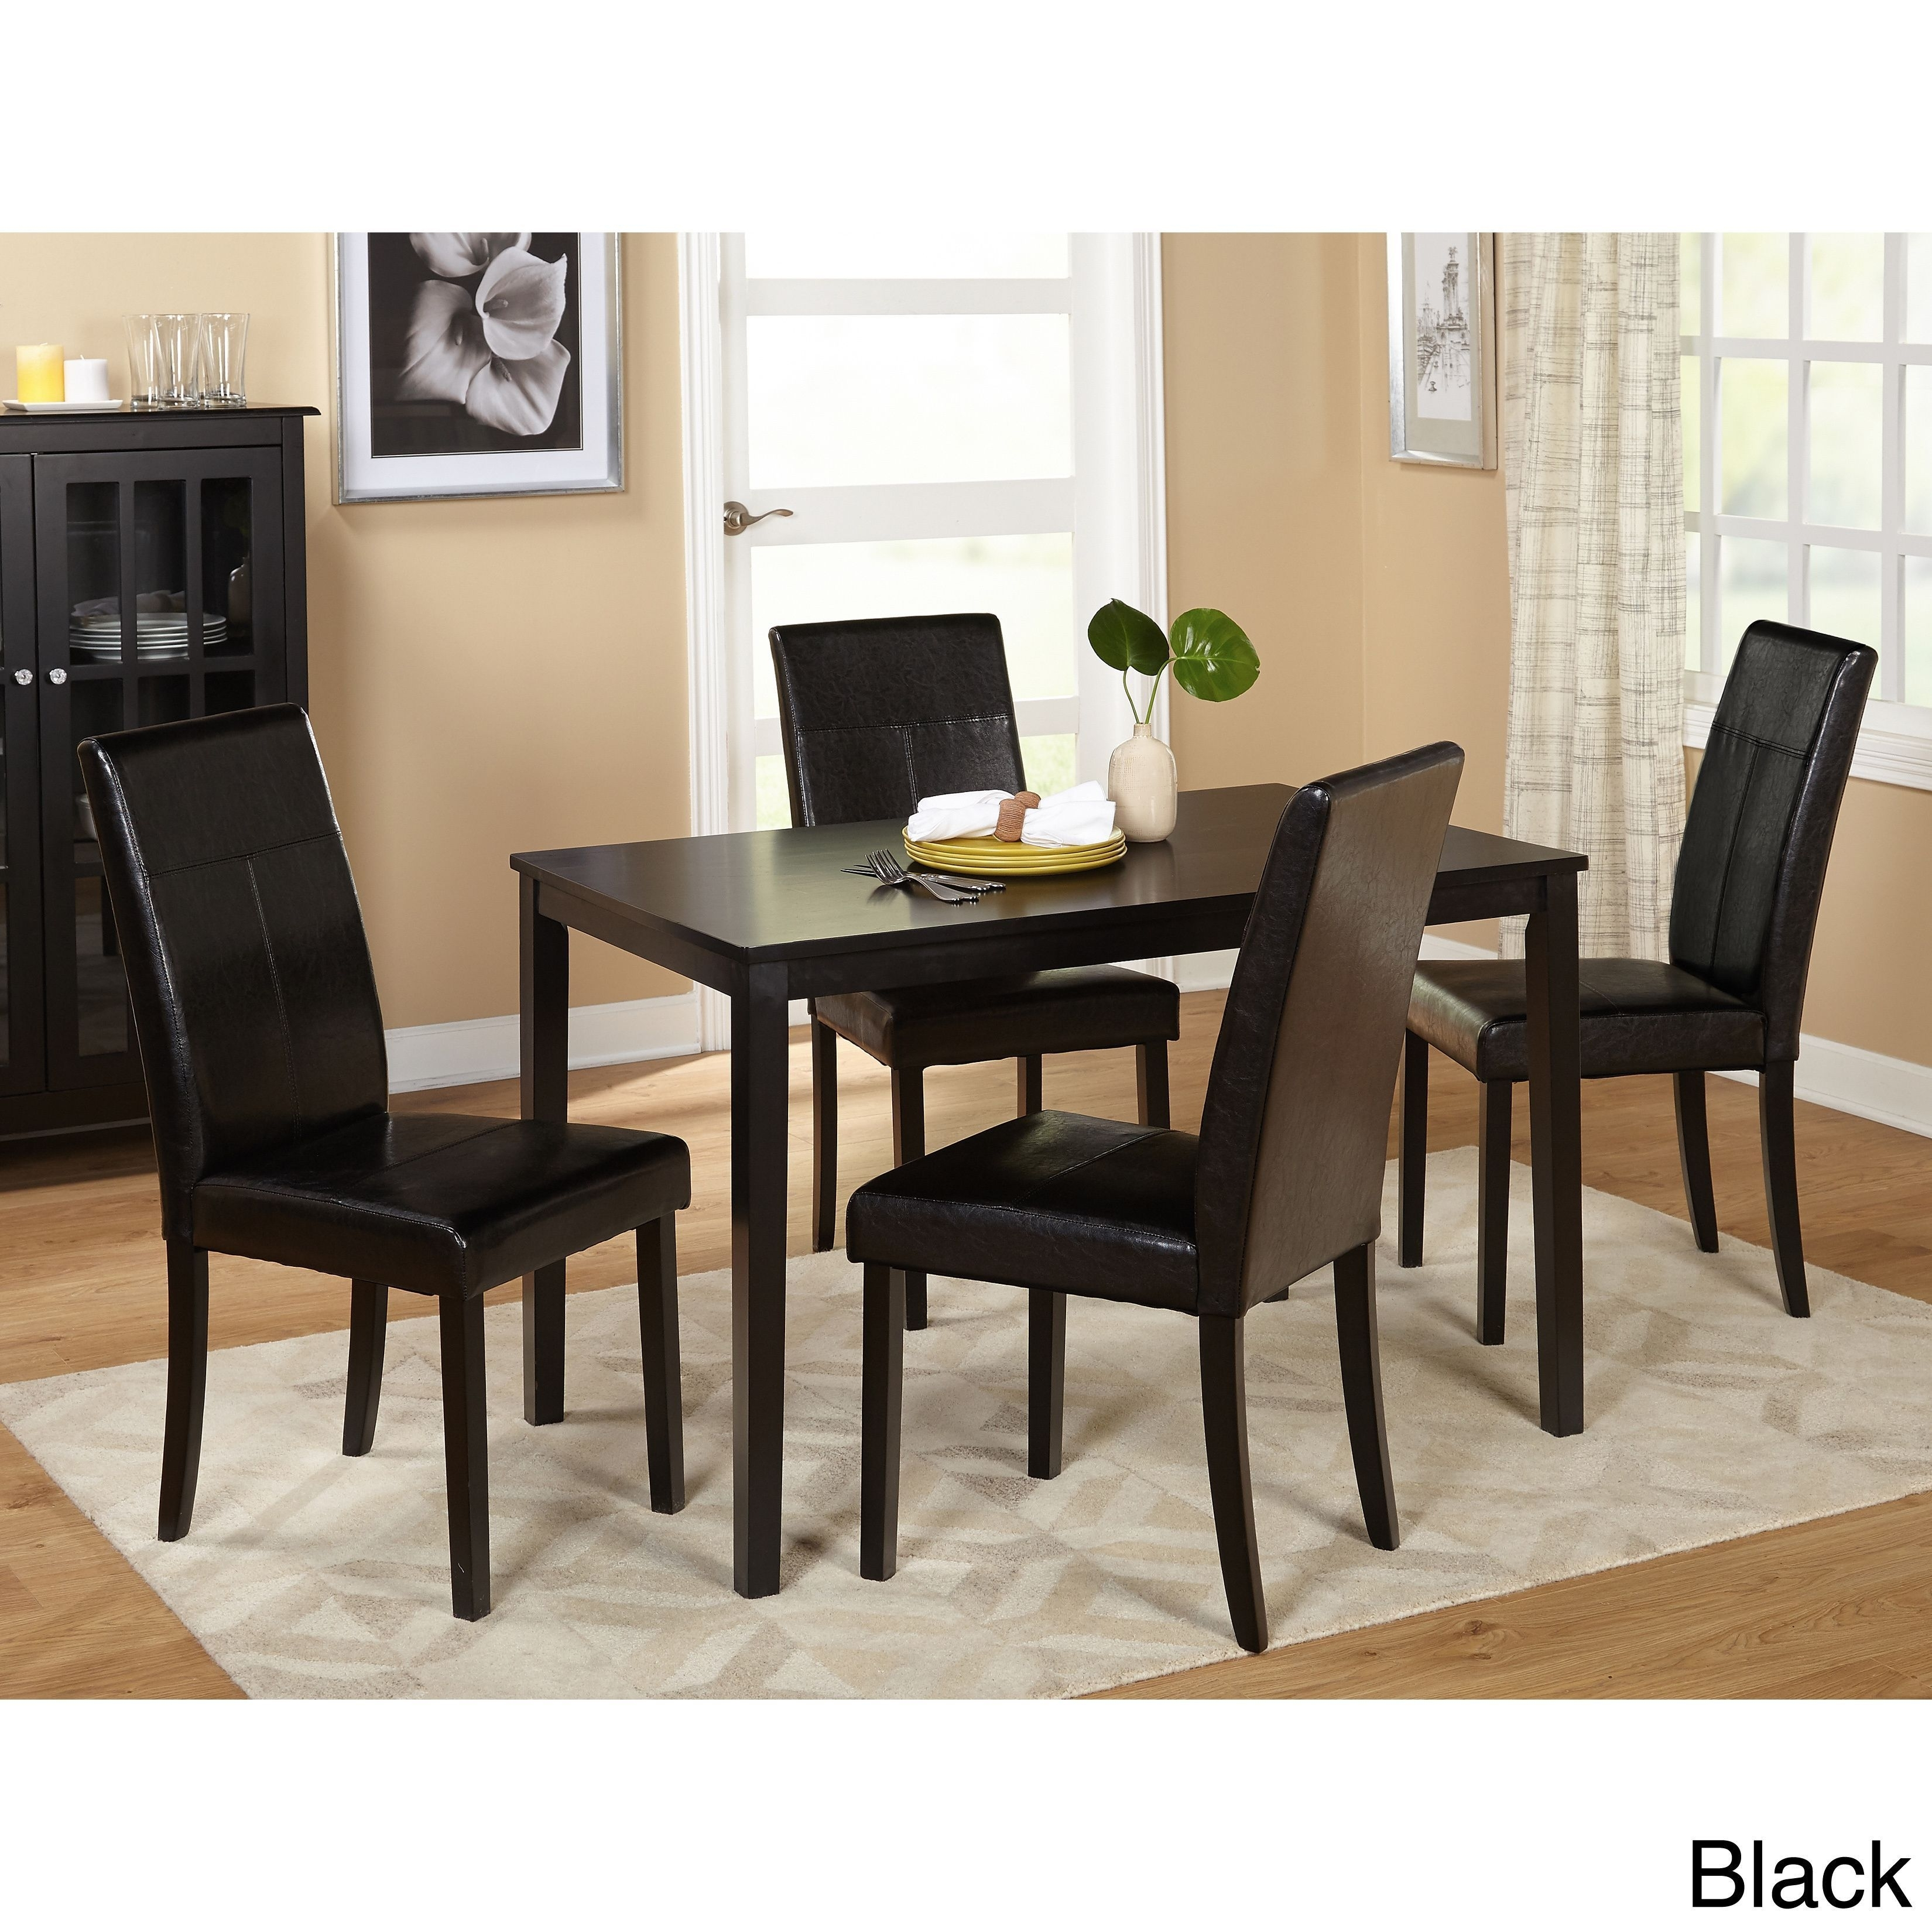 Toby 7 Piece Dining Setorren Ellis Reviews Intended For Newest Combs 5 Piece 48 Inch Extension Dining Sets With Mindy Side Chairs (Image 18 of 20)